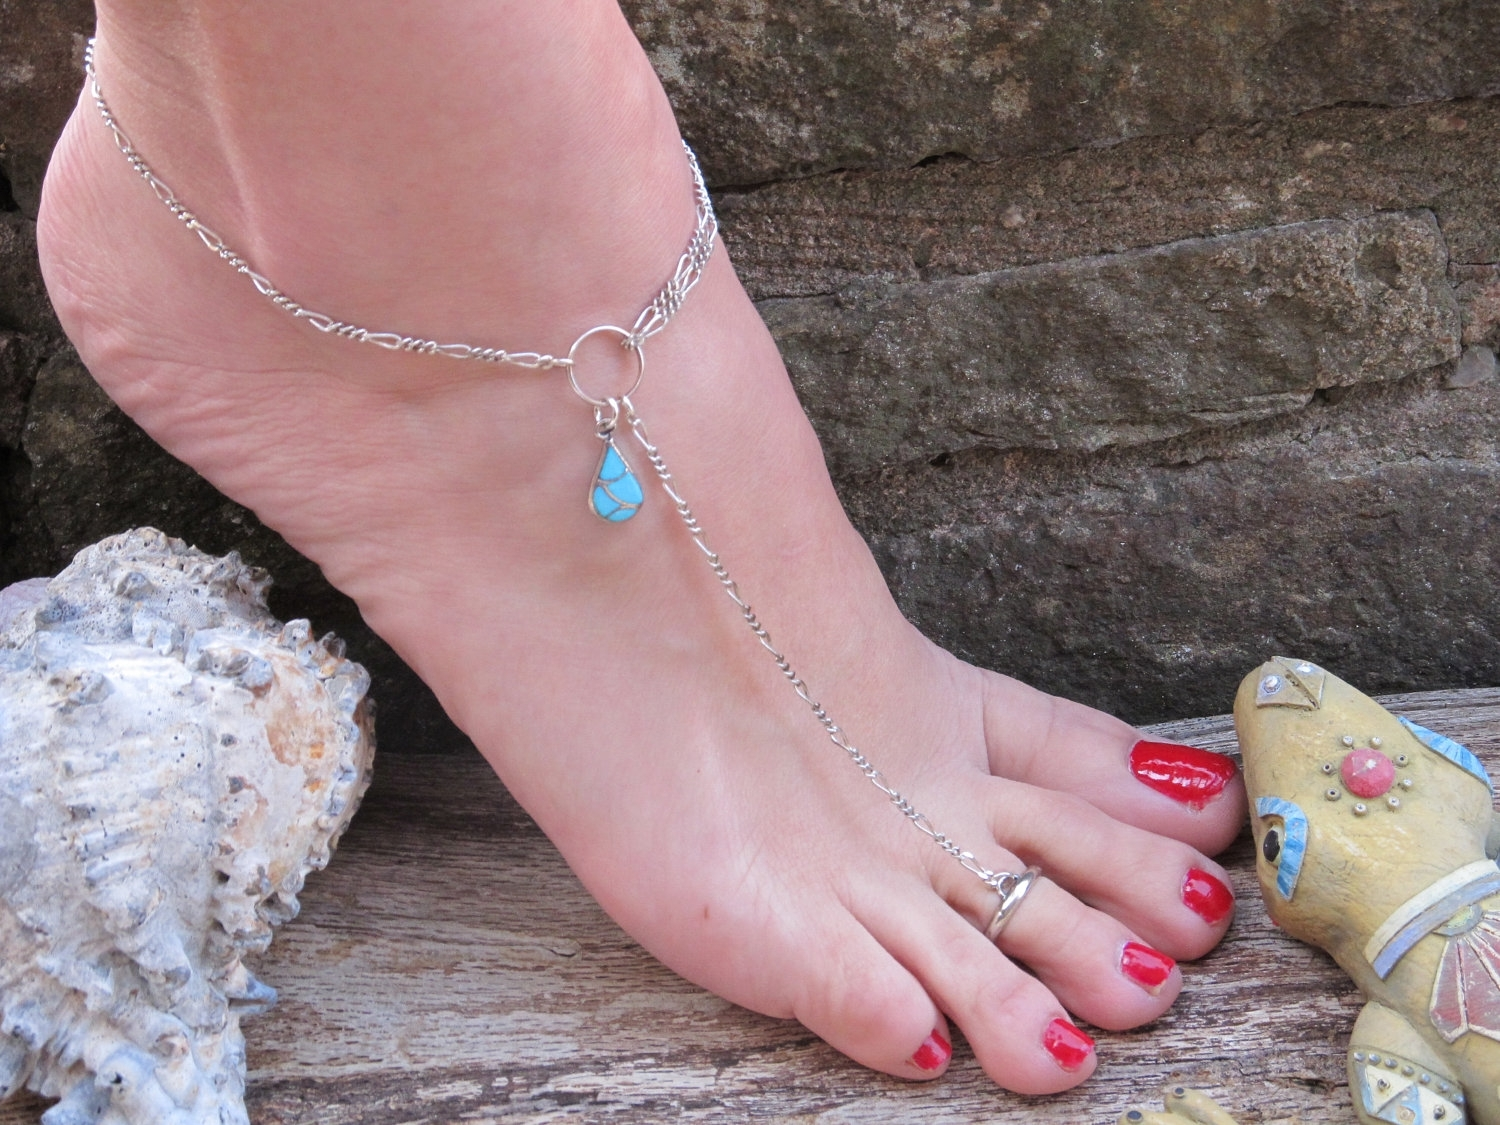 44 Toe Ankle Bracelet, Toe And Ankle Bracelet In One Gems Of Regarding Most Up To Date Ankle Bracelet Toe Rings (View 4 of 25)